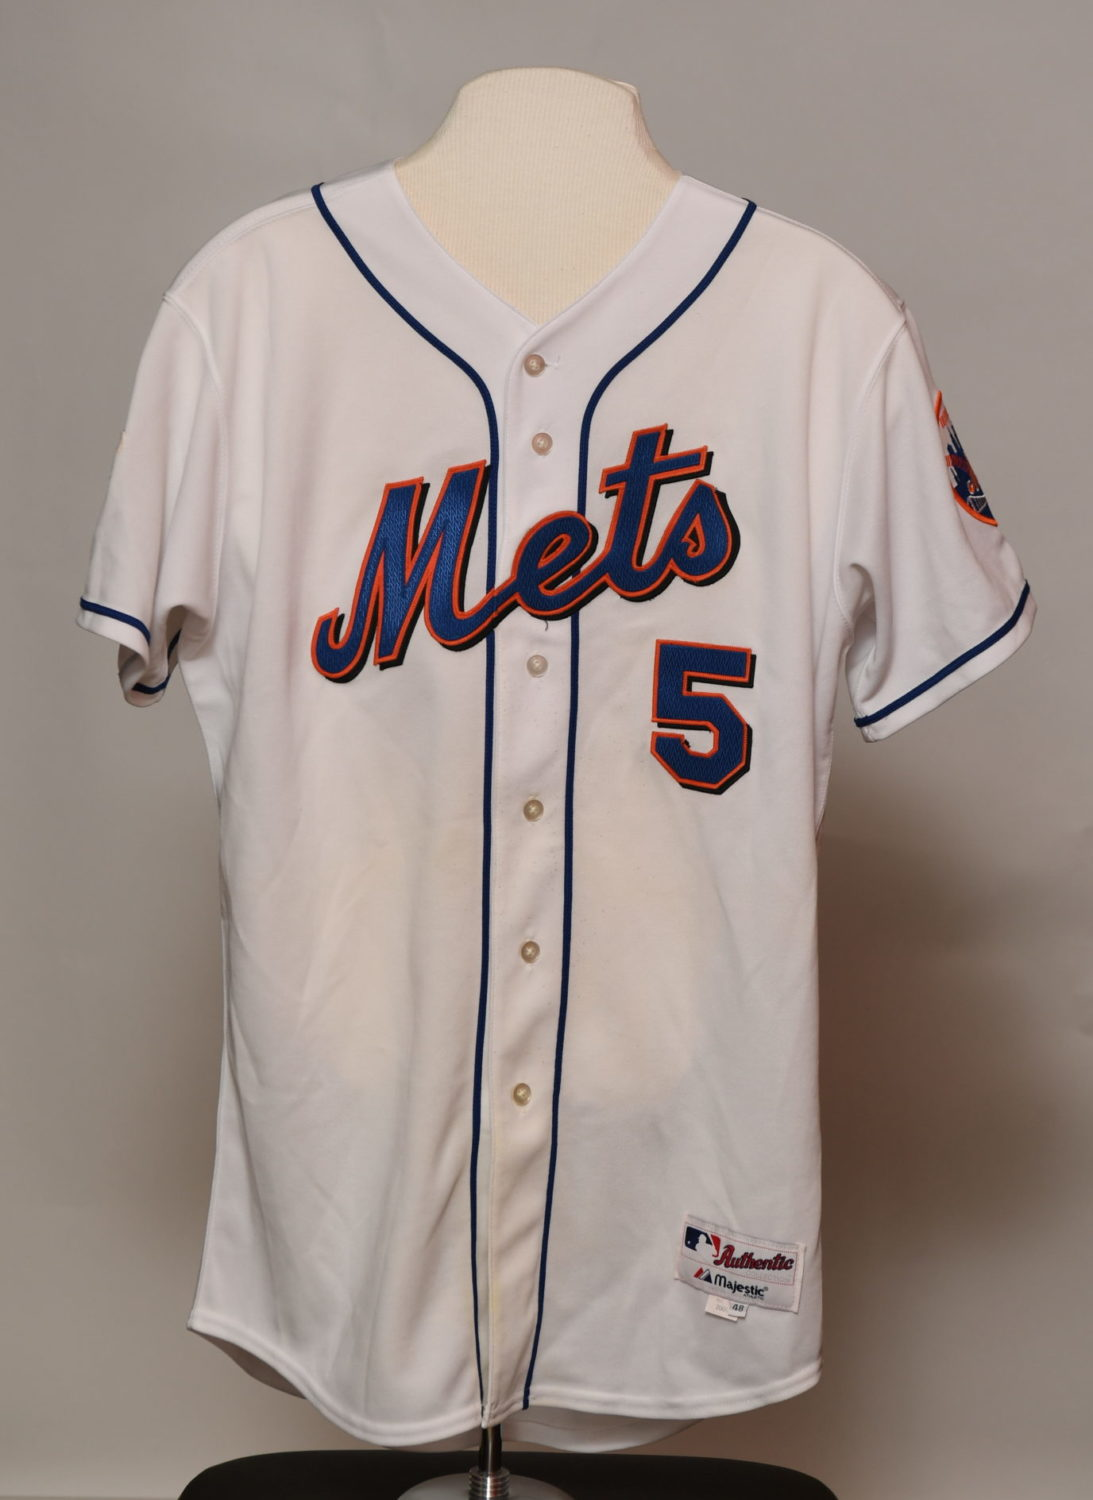 Front of white jersey with